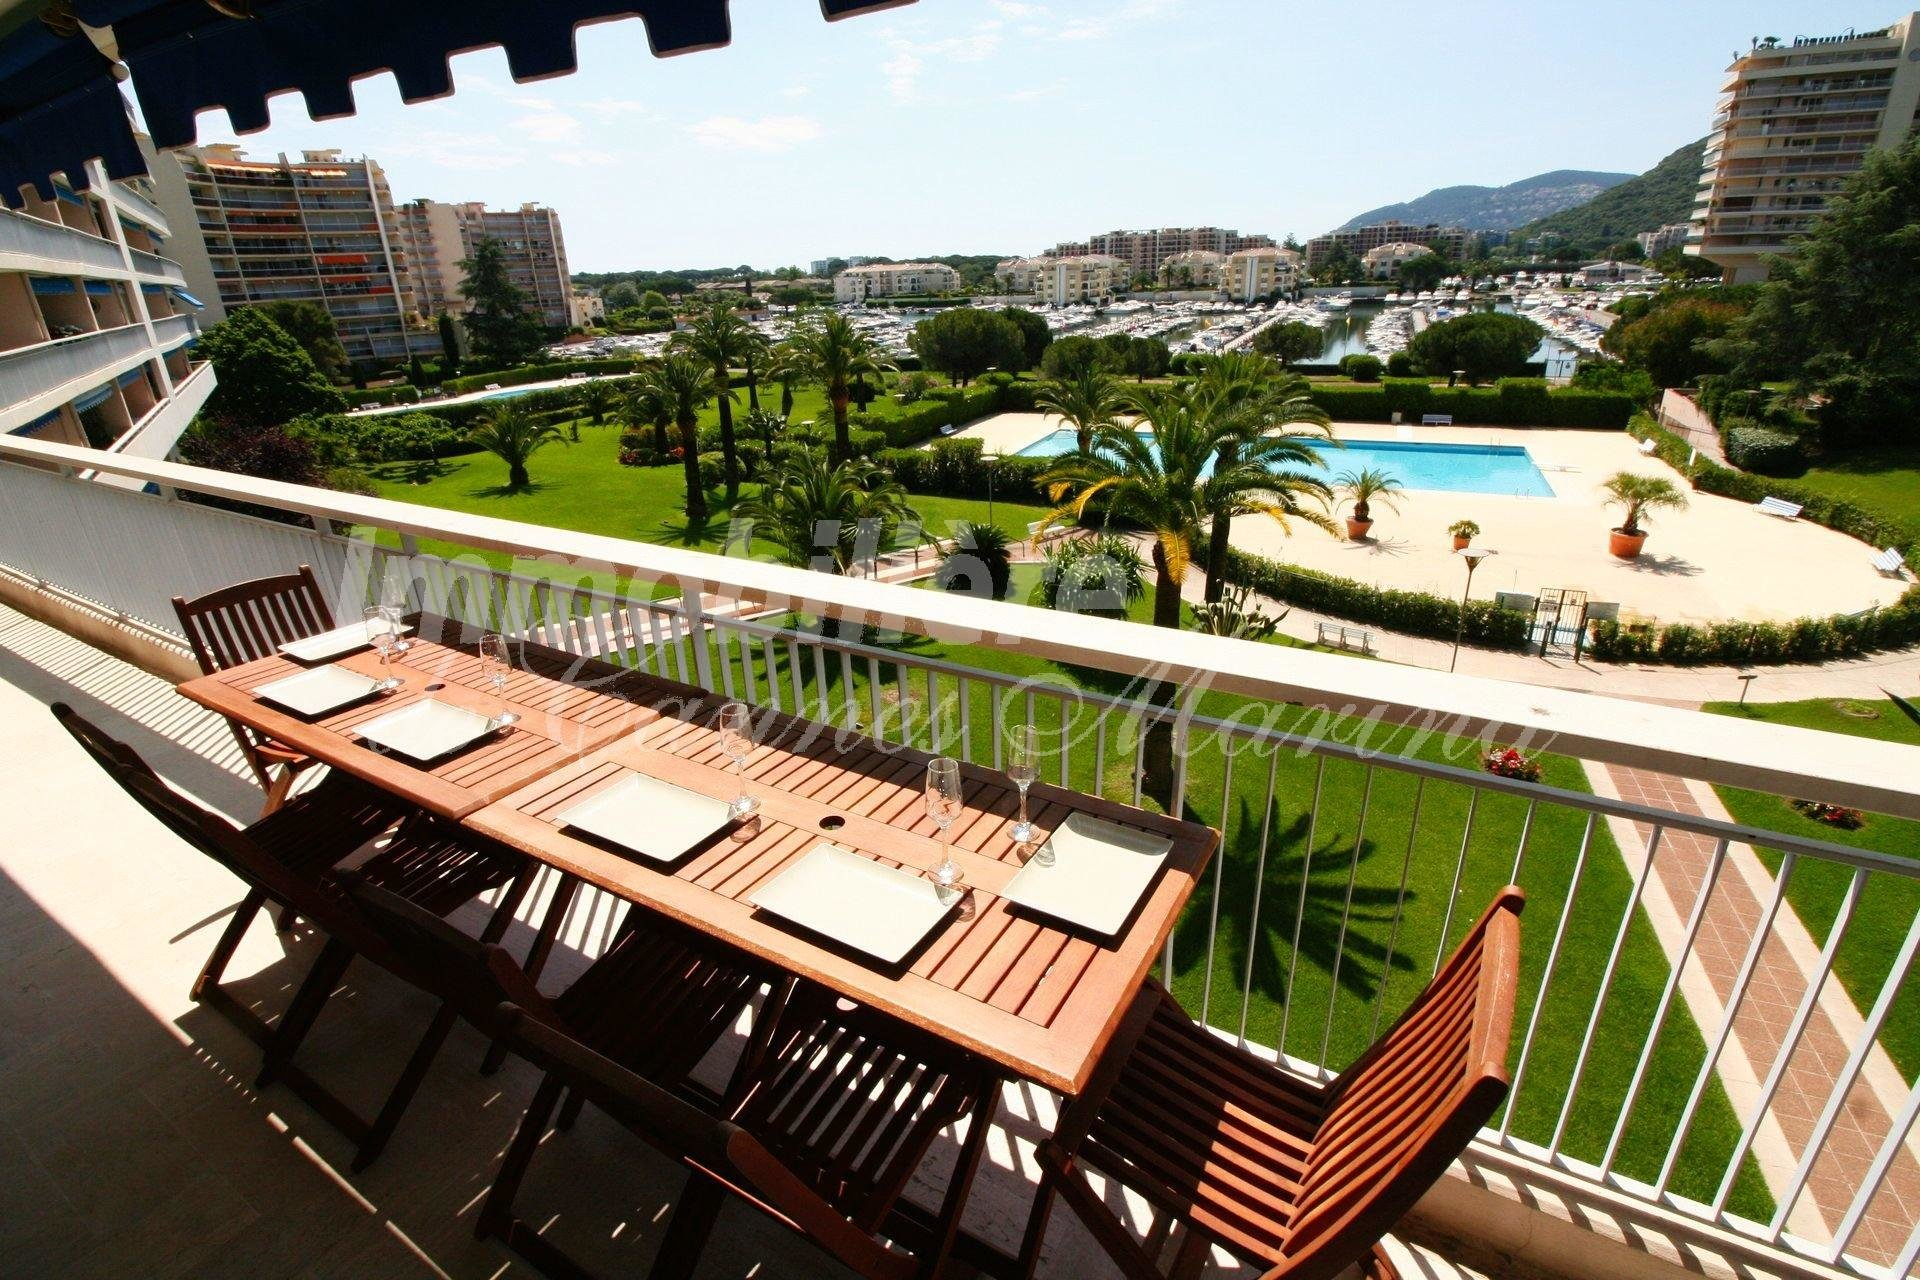 SOUTH FACING - 2 BEDROOM APT - PANORAMIC VIEWS OVER THE MARINA AND PARC